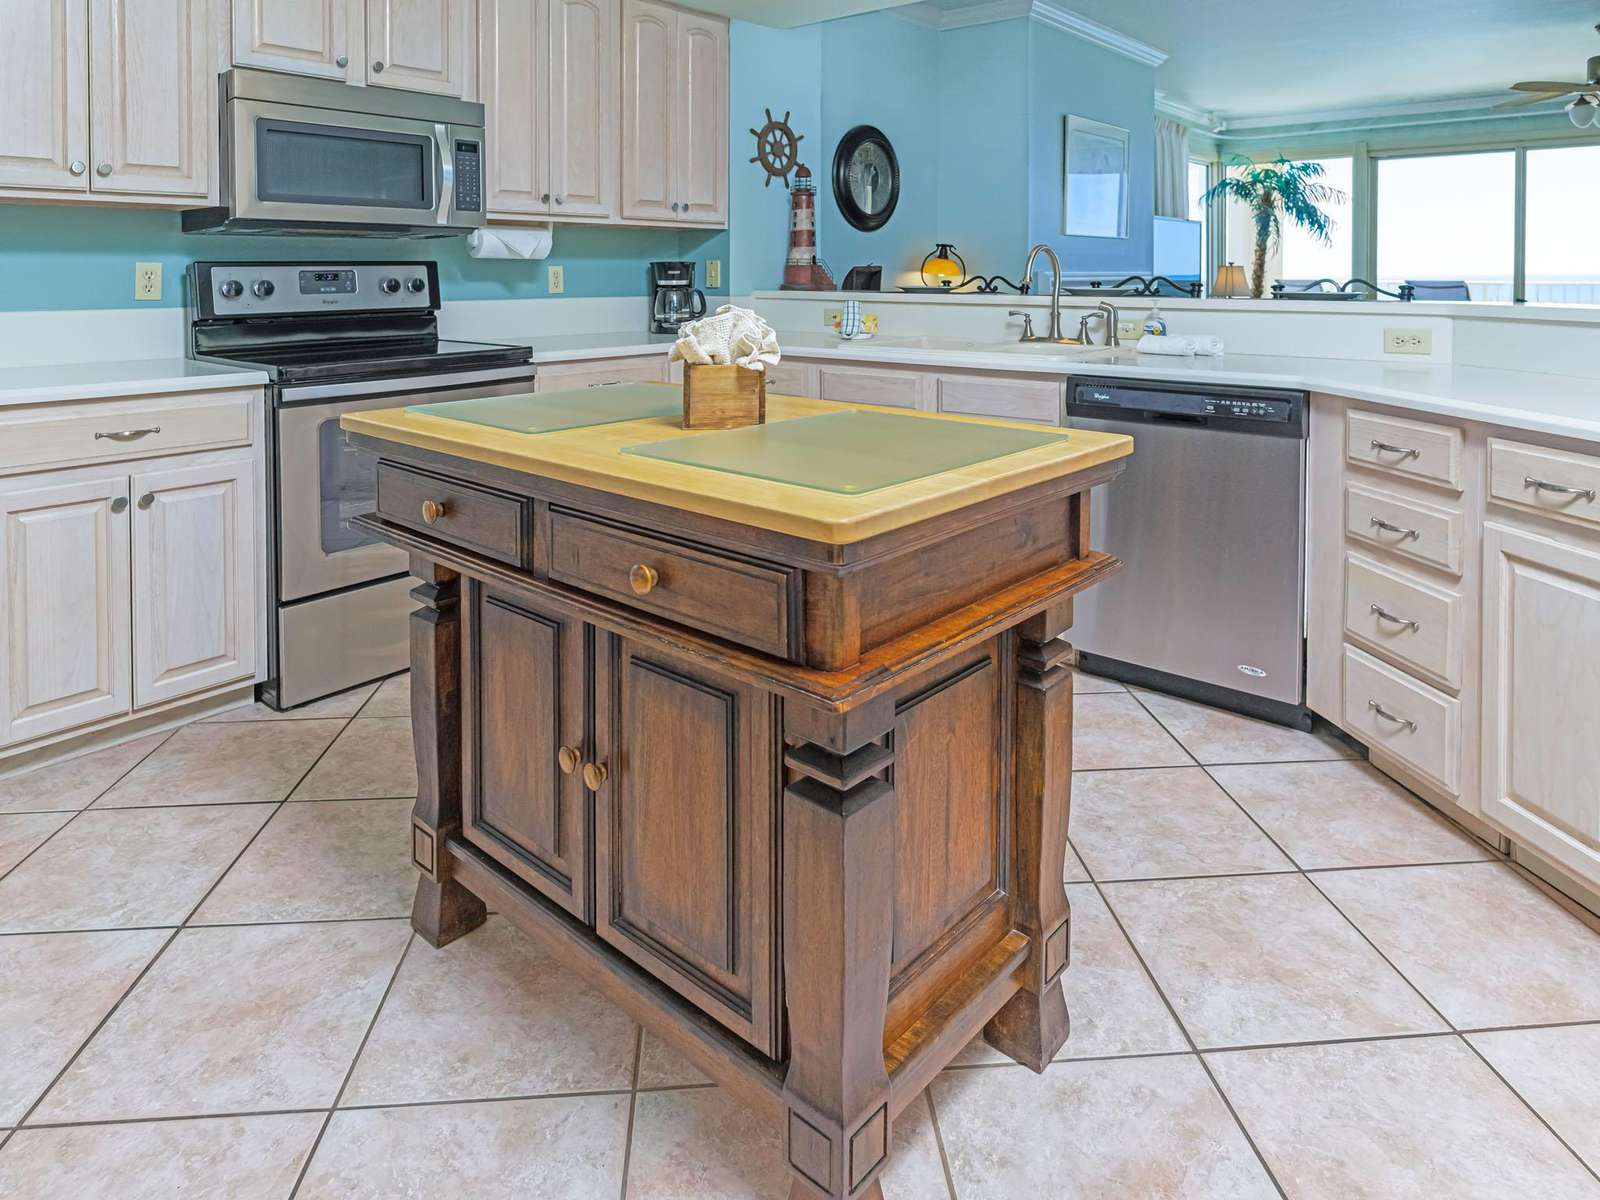 The kitchen has lots of counter space!